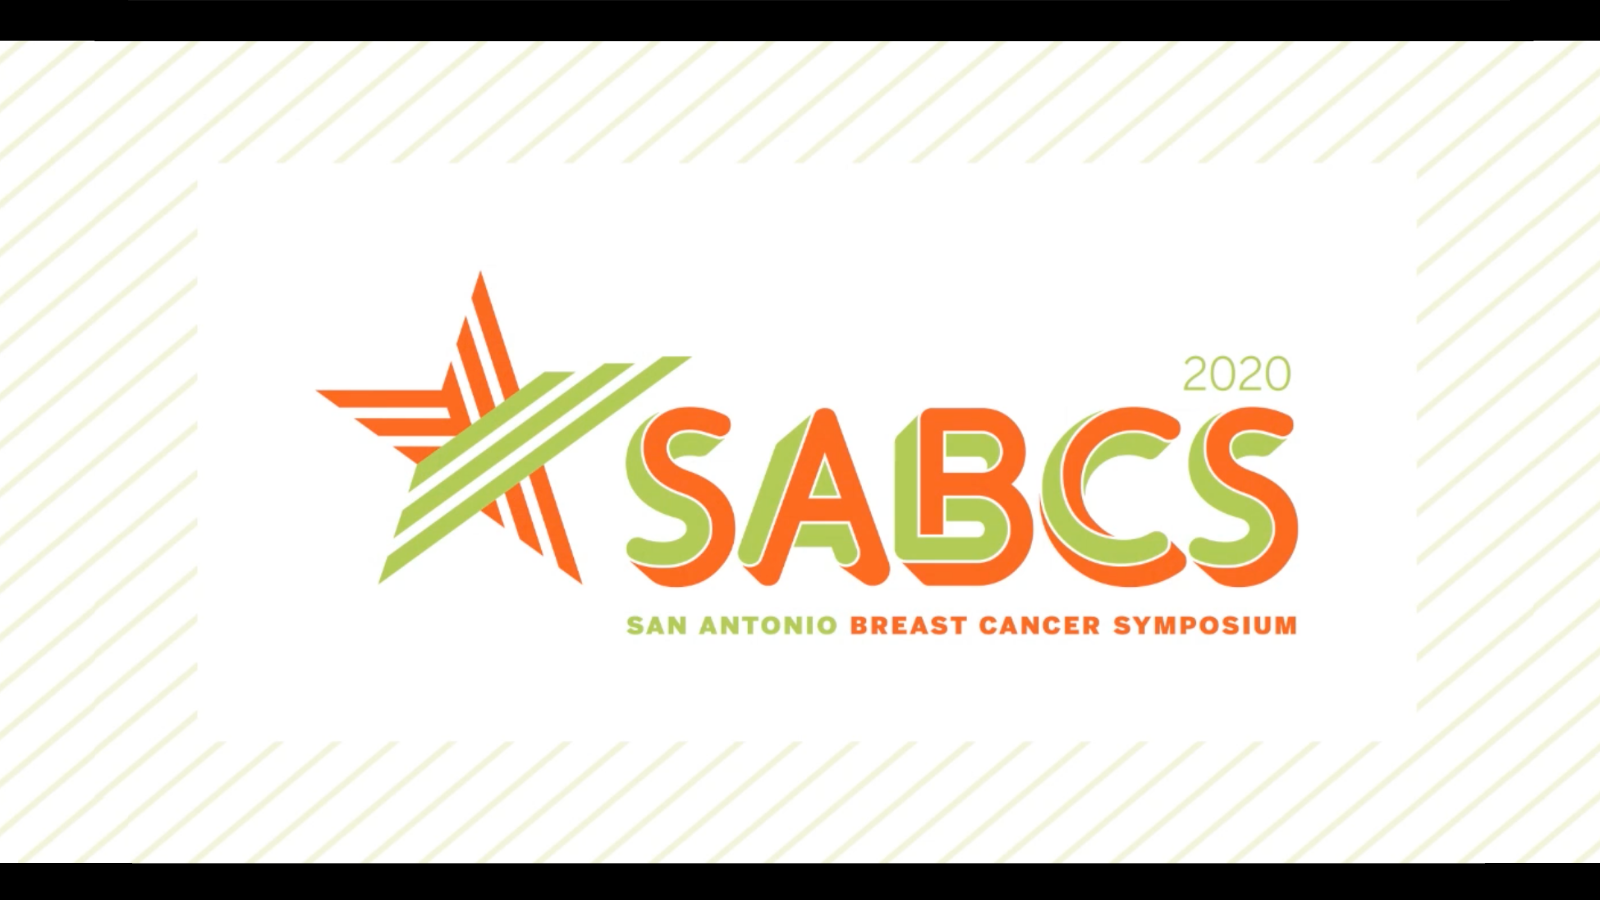 The SABCS Video Backdrop featuring the SABCS logo